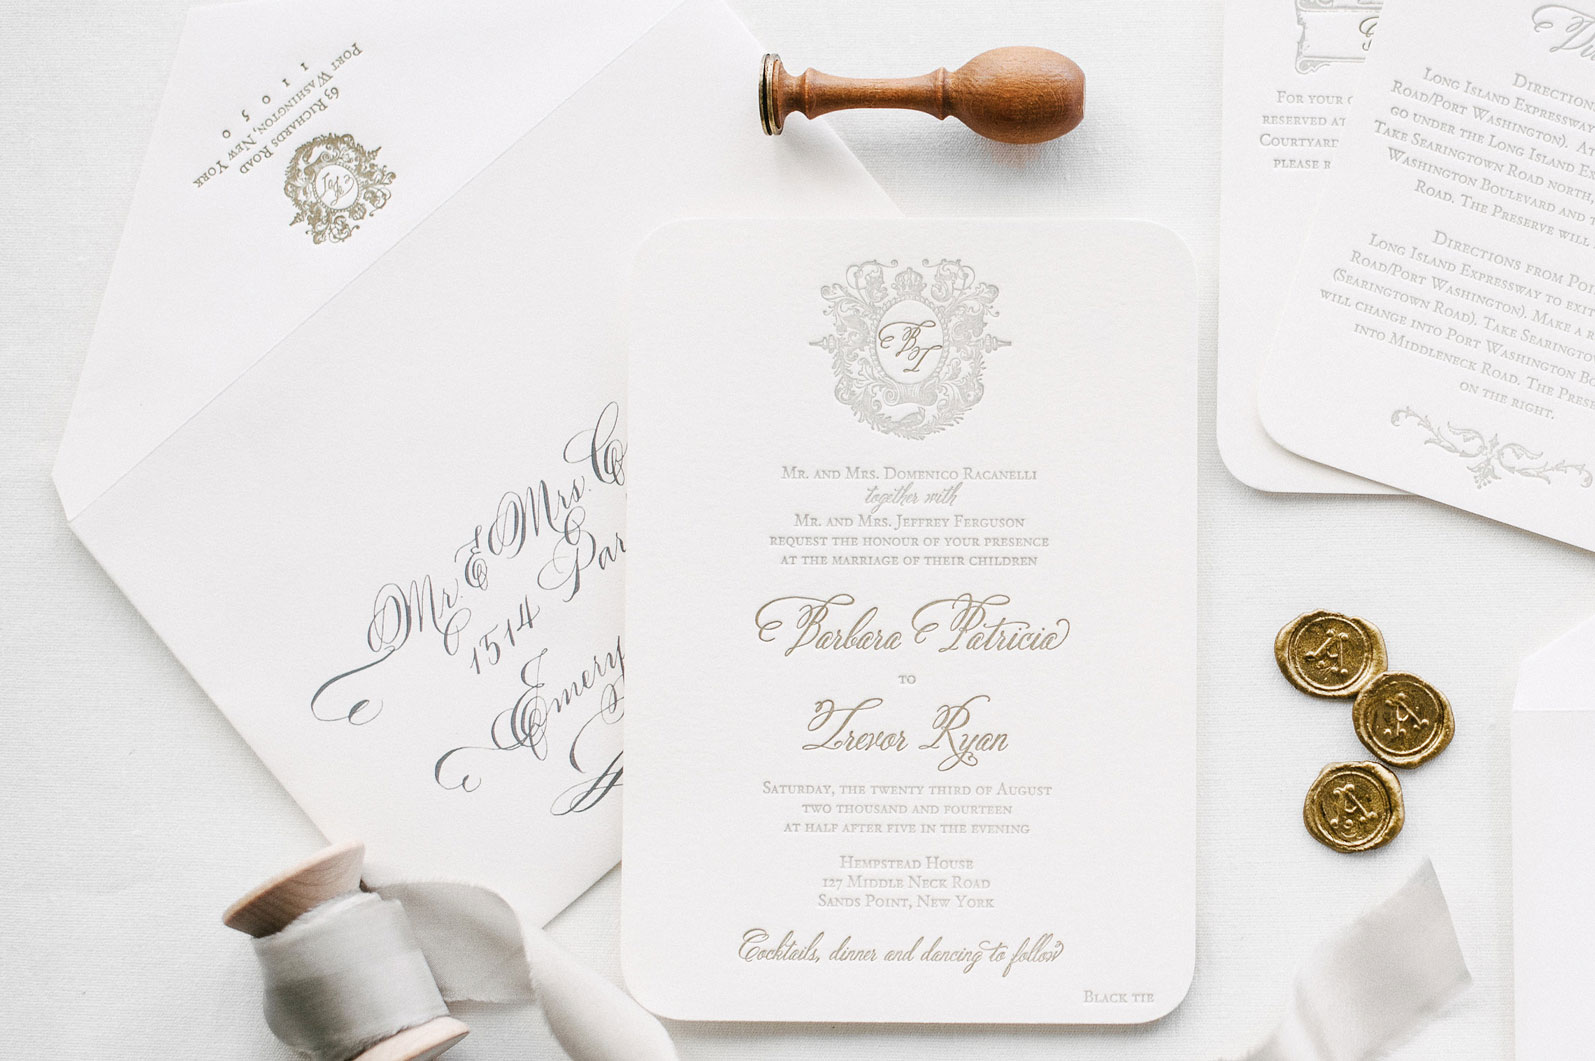 How to Order Custom Letterpress Wedding Invitations | De-mystifying ...